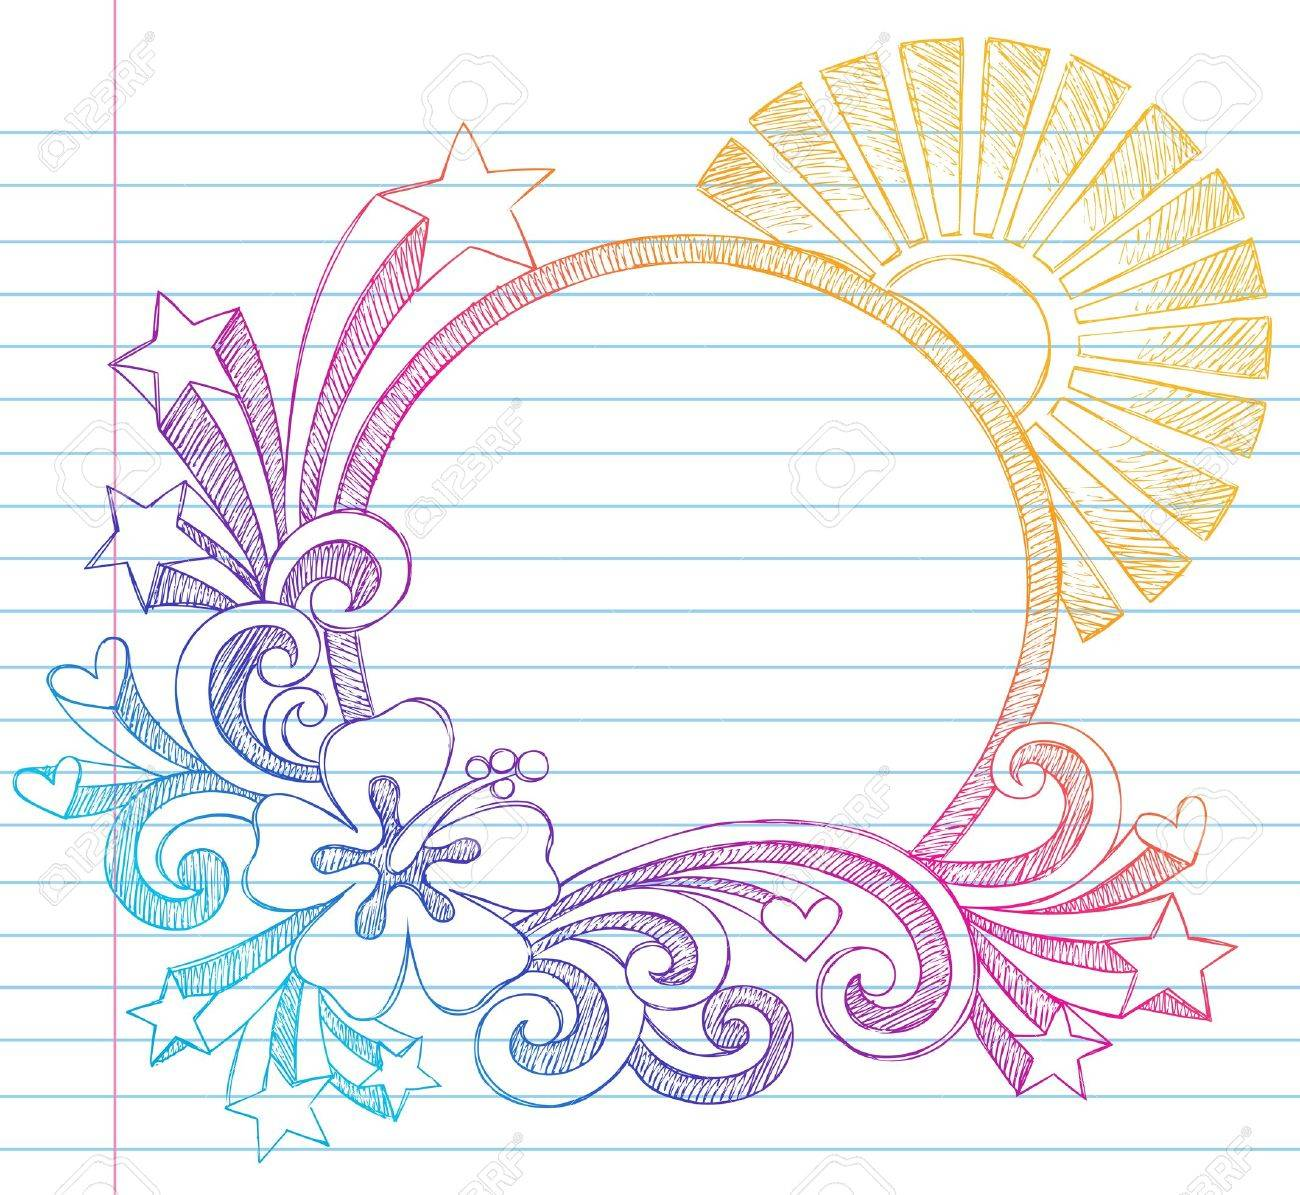 Summer Sun and Hibiscus Tropical Beach Border Frame Sketchy Notebook Doodles Illustration on Lined Sketchbook Paper Background Stock Vector - 12035452